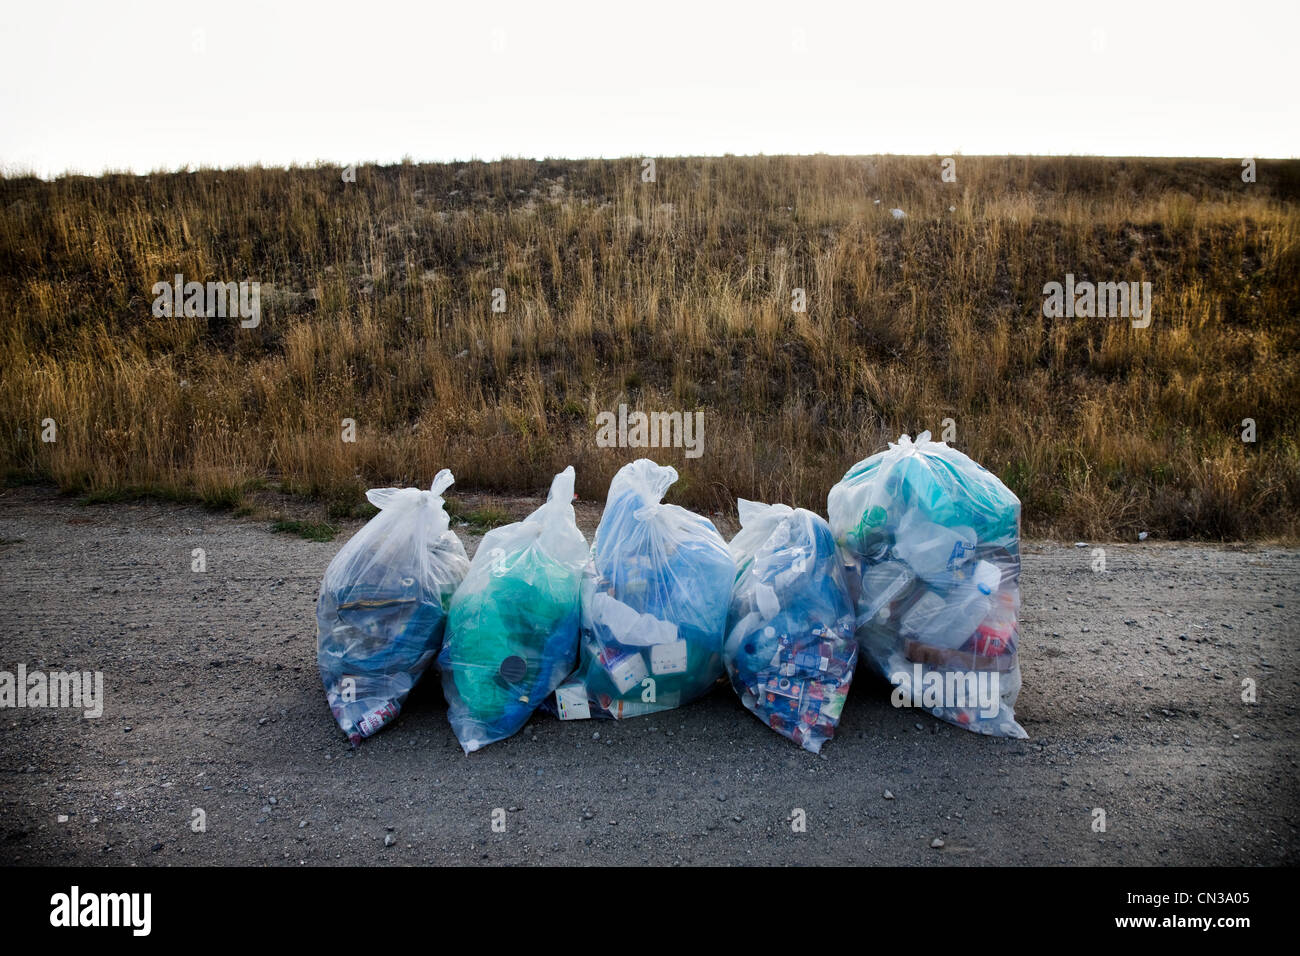 Recycling bags on a road - Stock Image